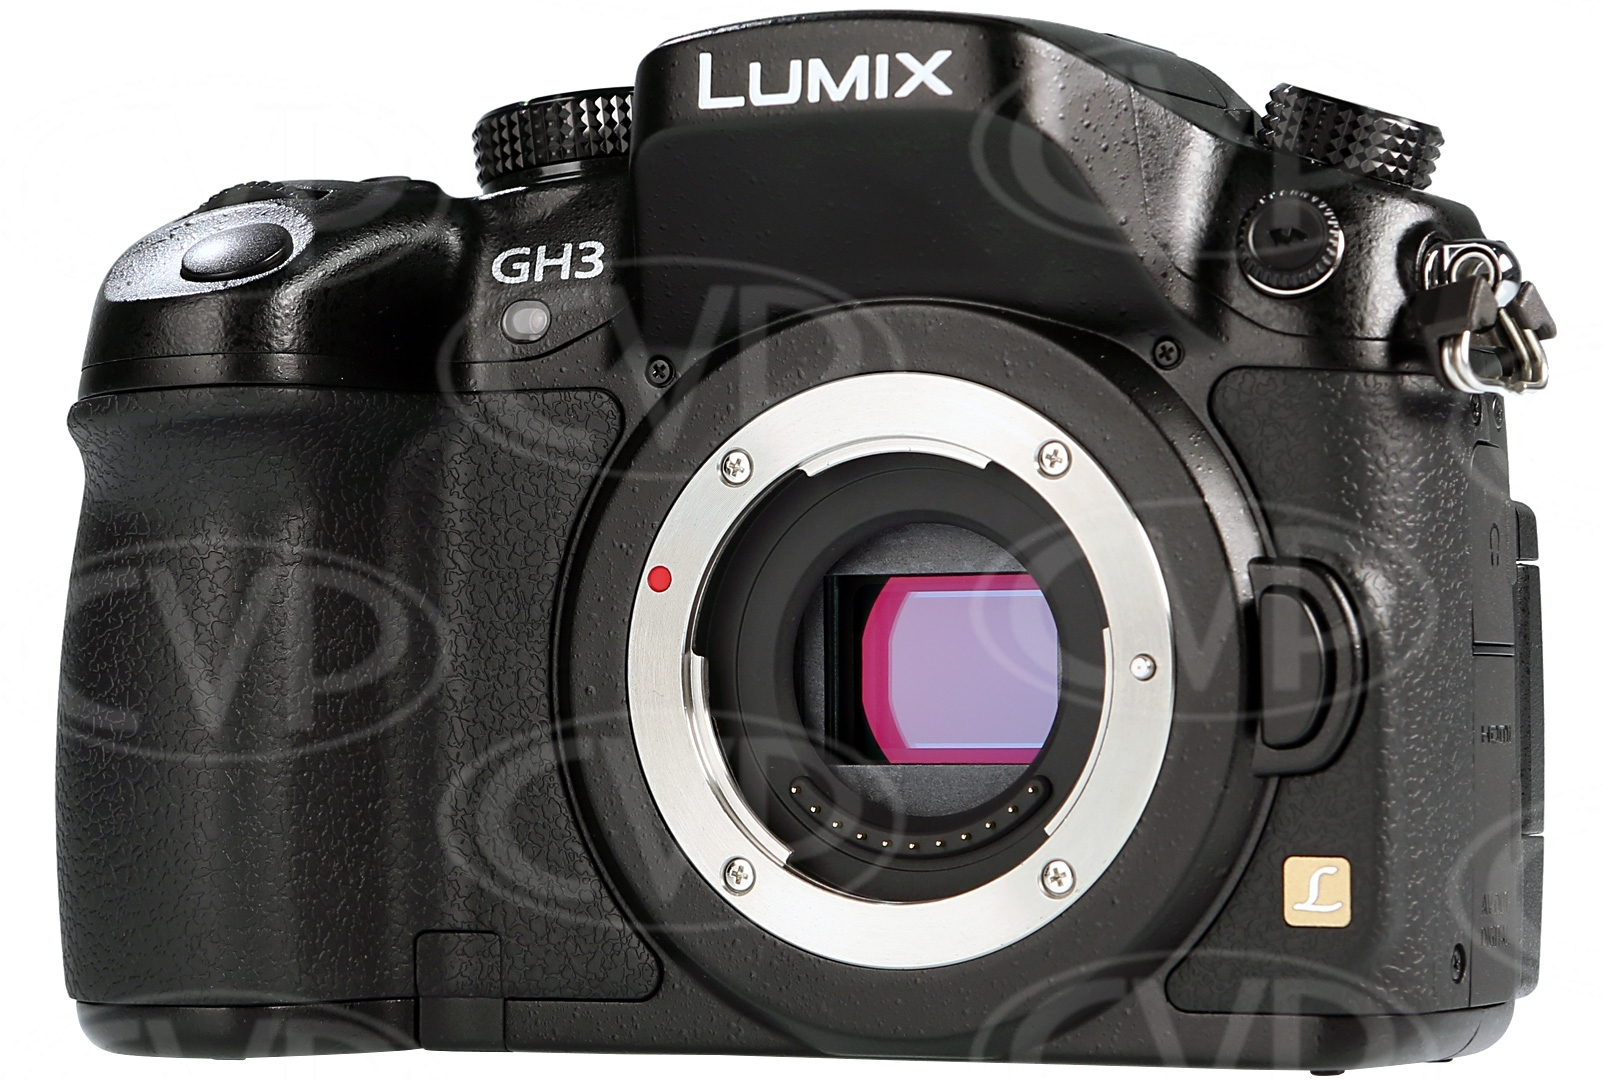 Panasonic Lumix DMC-GH3 body only